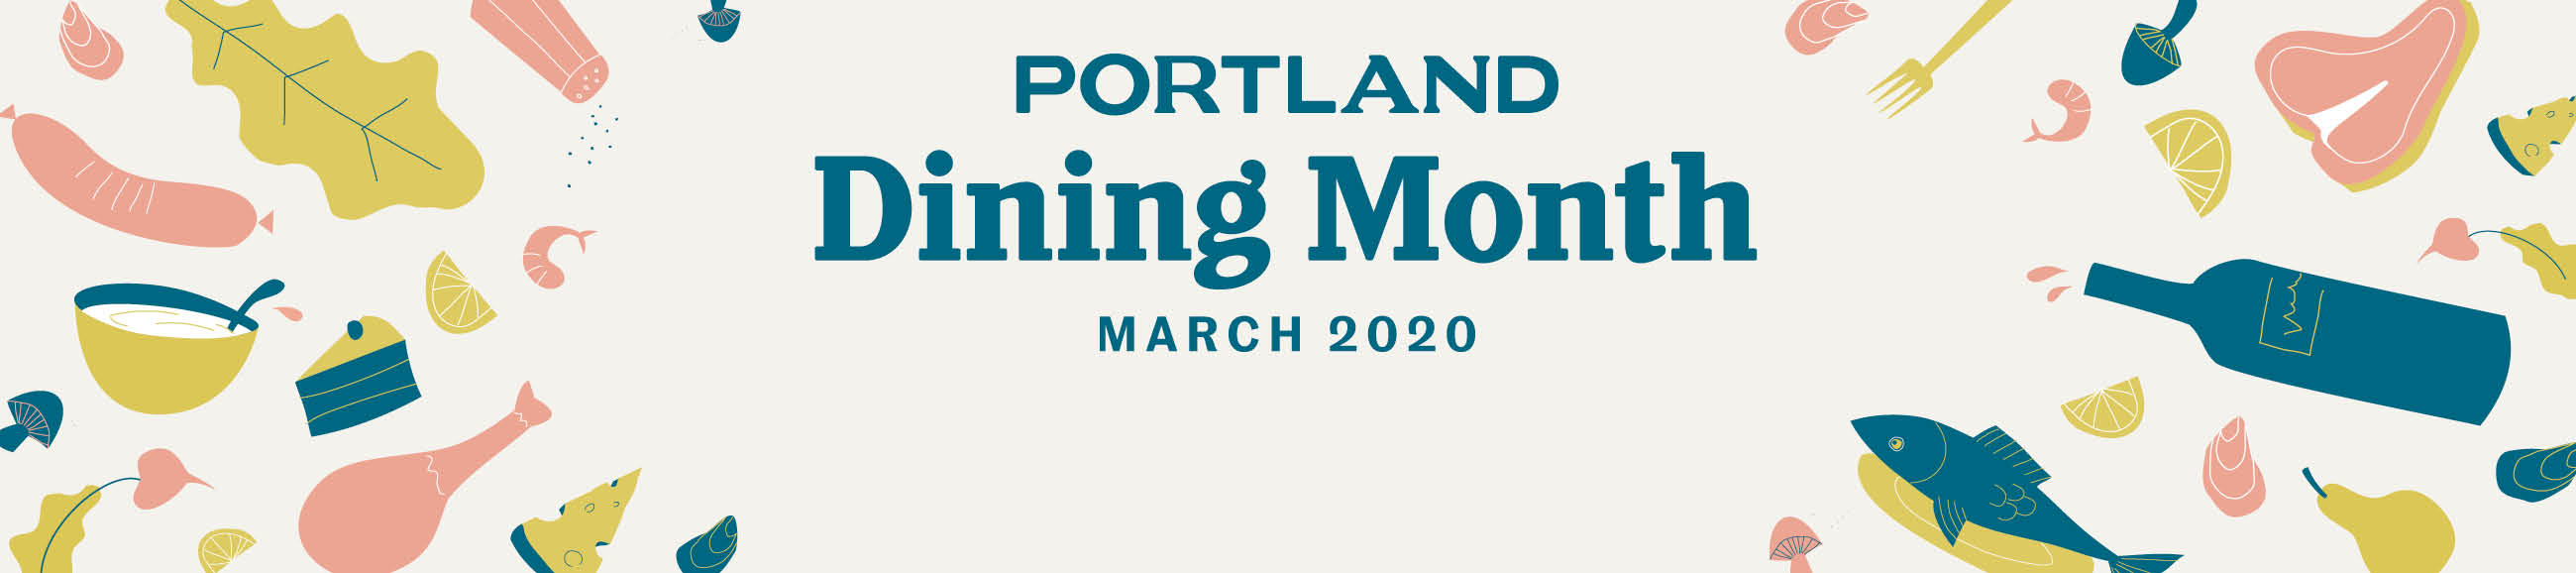 Portland Dining Month March 1 31 2020 Opentable